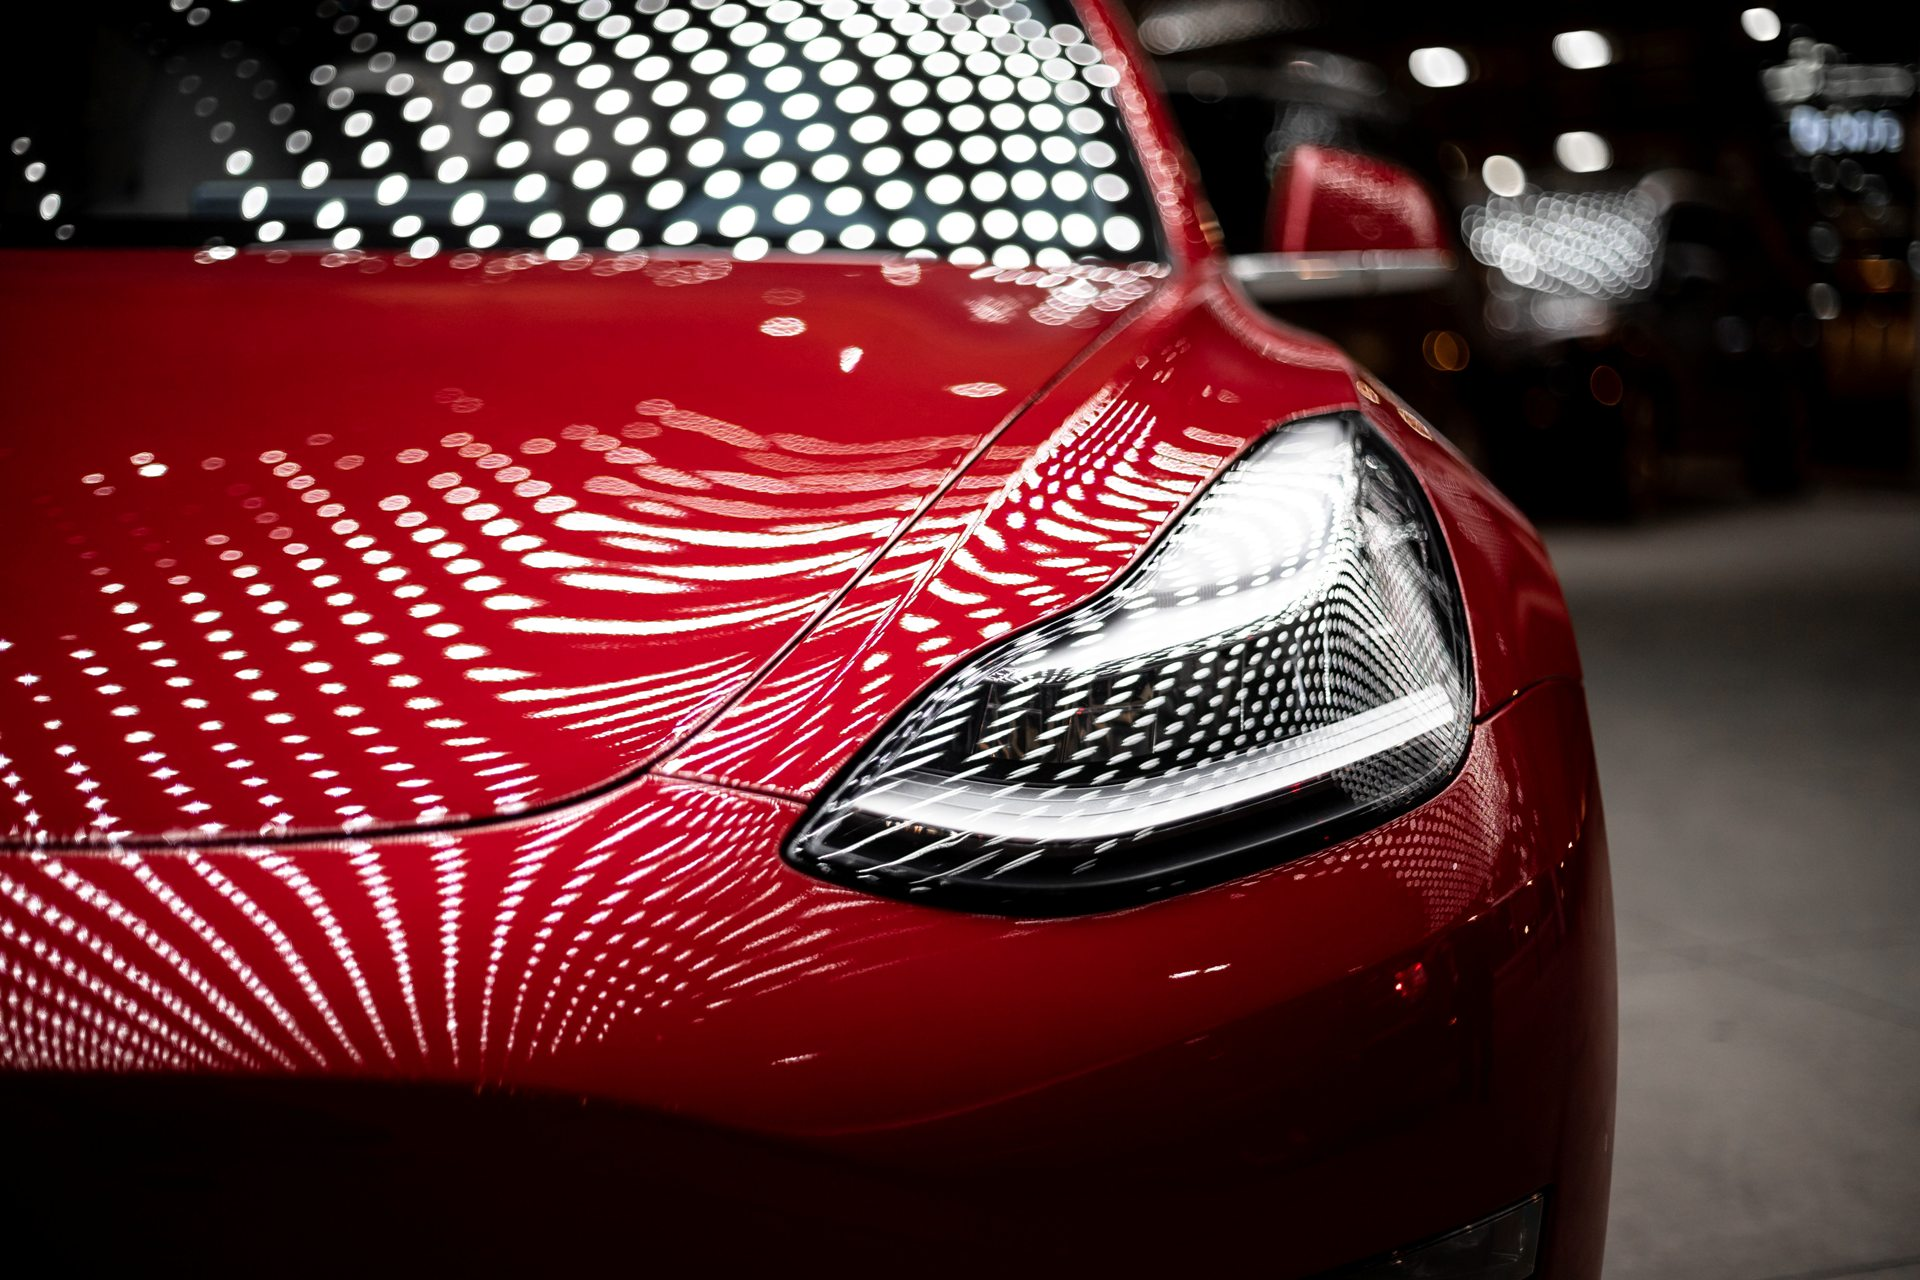 Red Tesla car illuminated by grid of lights